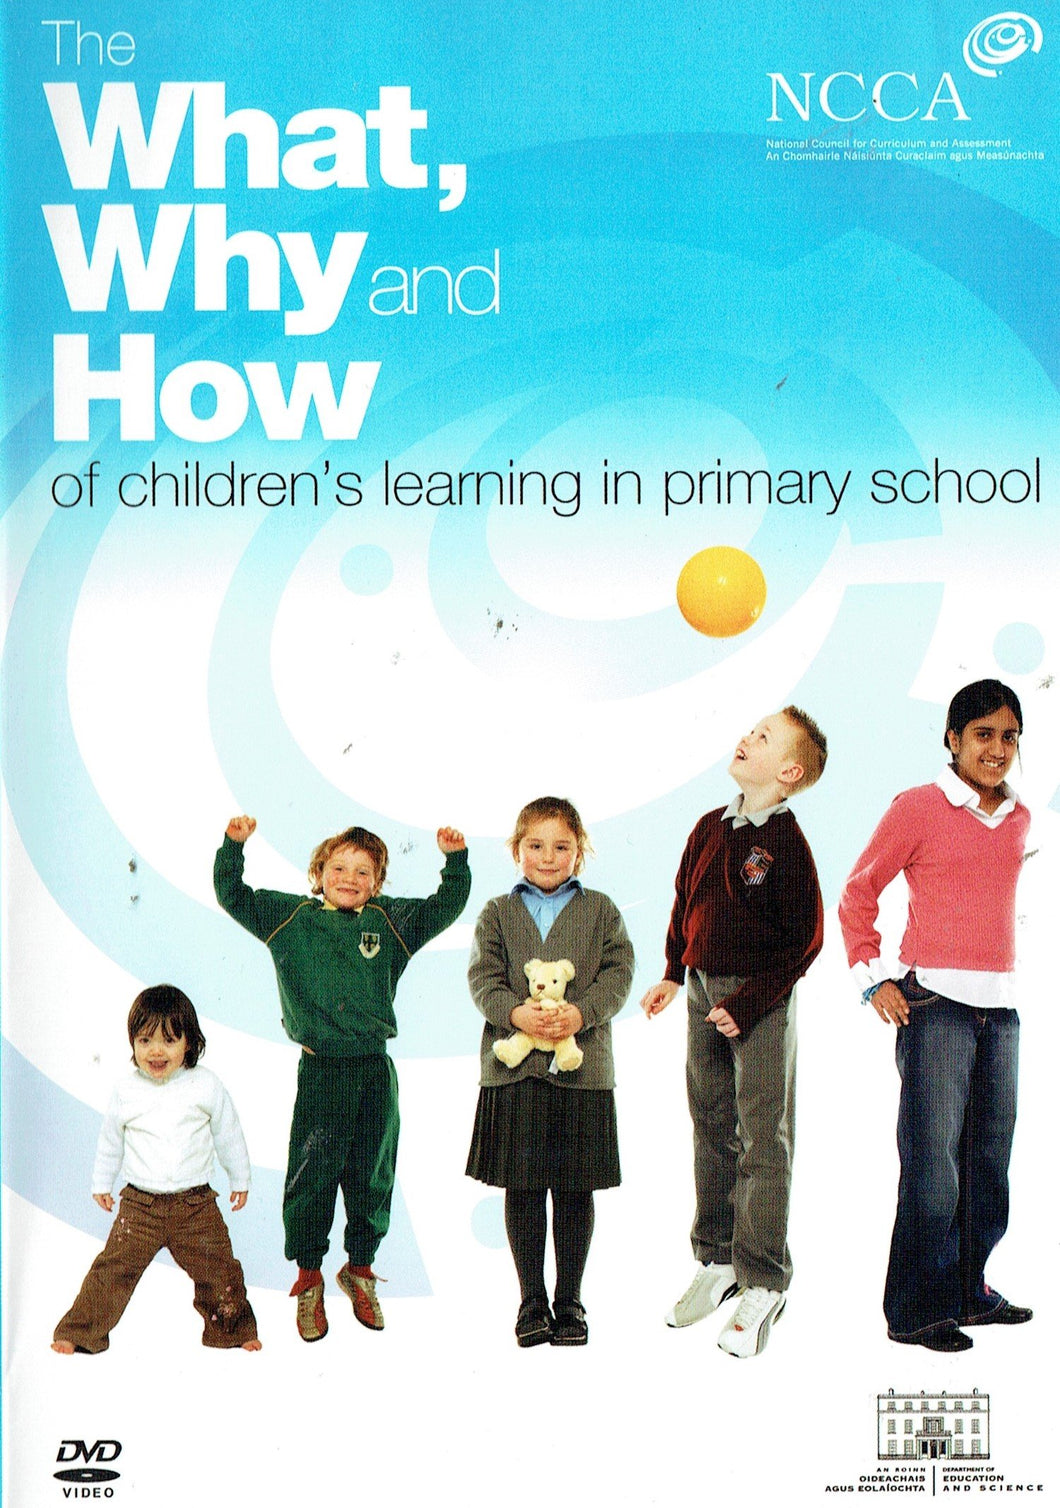 The What, Why and How of Children's Learning in Primary School